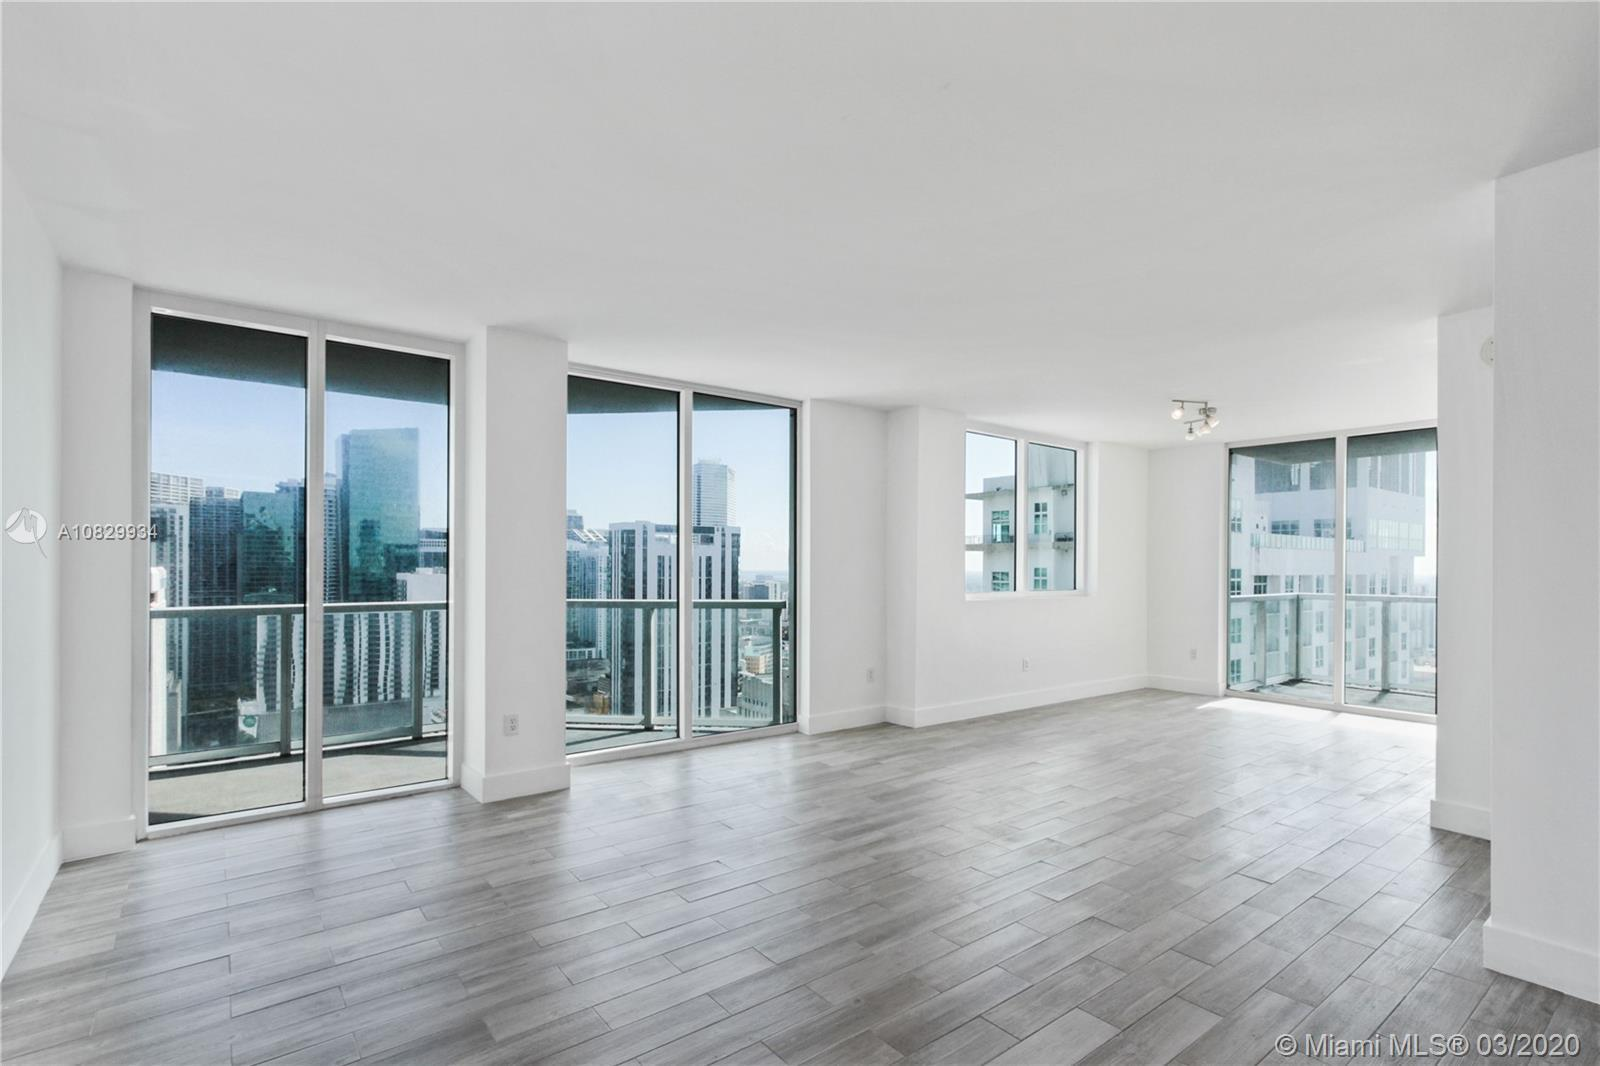 Beautiful 2/2 unit in the heart of downtown with views to the bay, valet and concierge service 24 ho